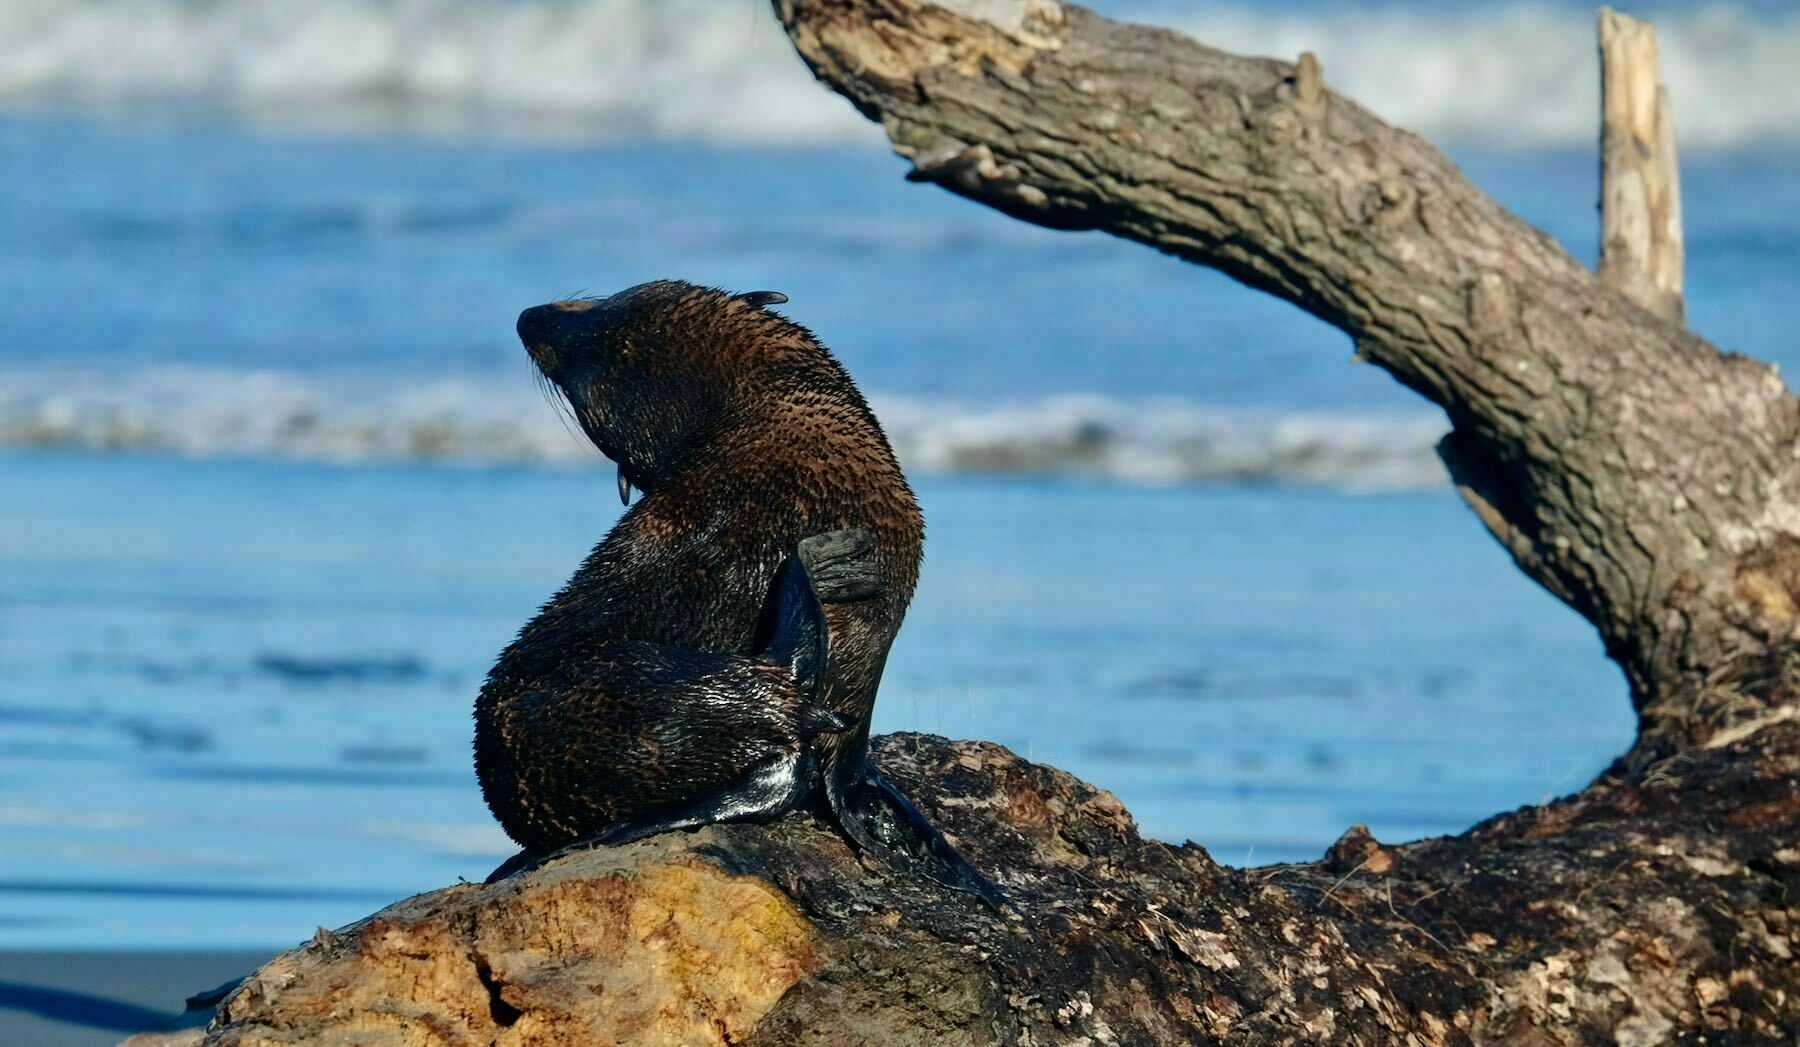 Seal pup on driftwood.